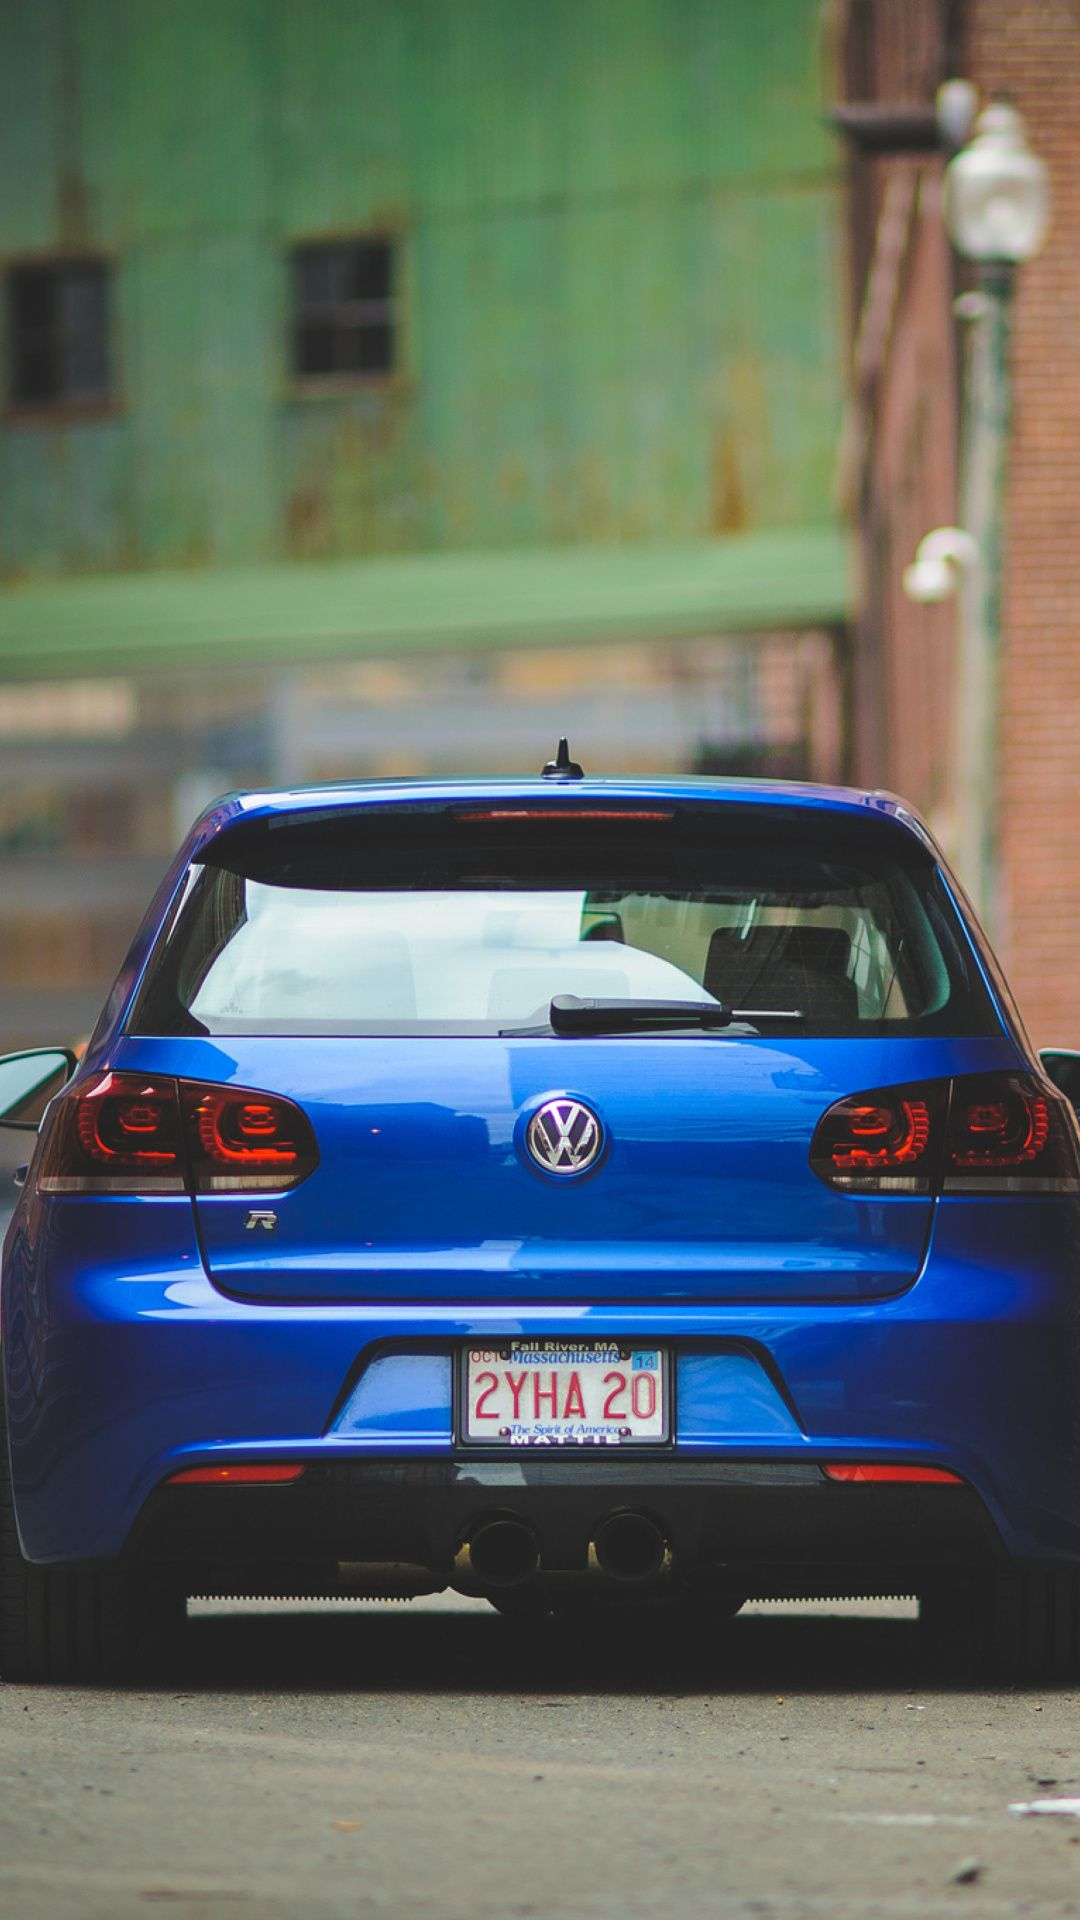 Volkswagen Golf R Wallpaper for iPhone 6 Plus | Images Wallpapers | Vw golf wallpaper ...